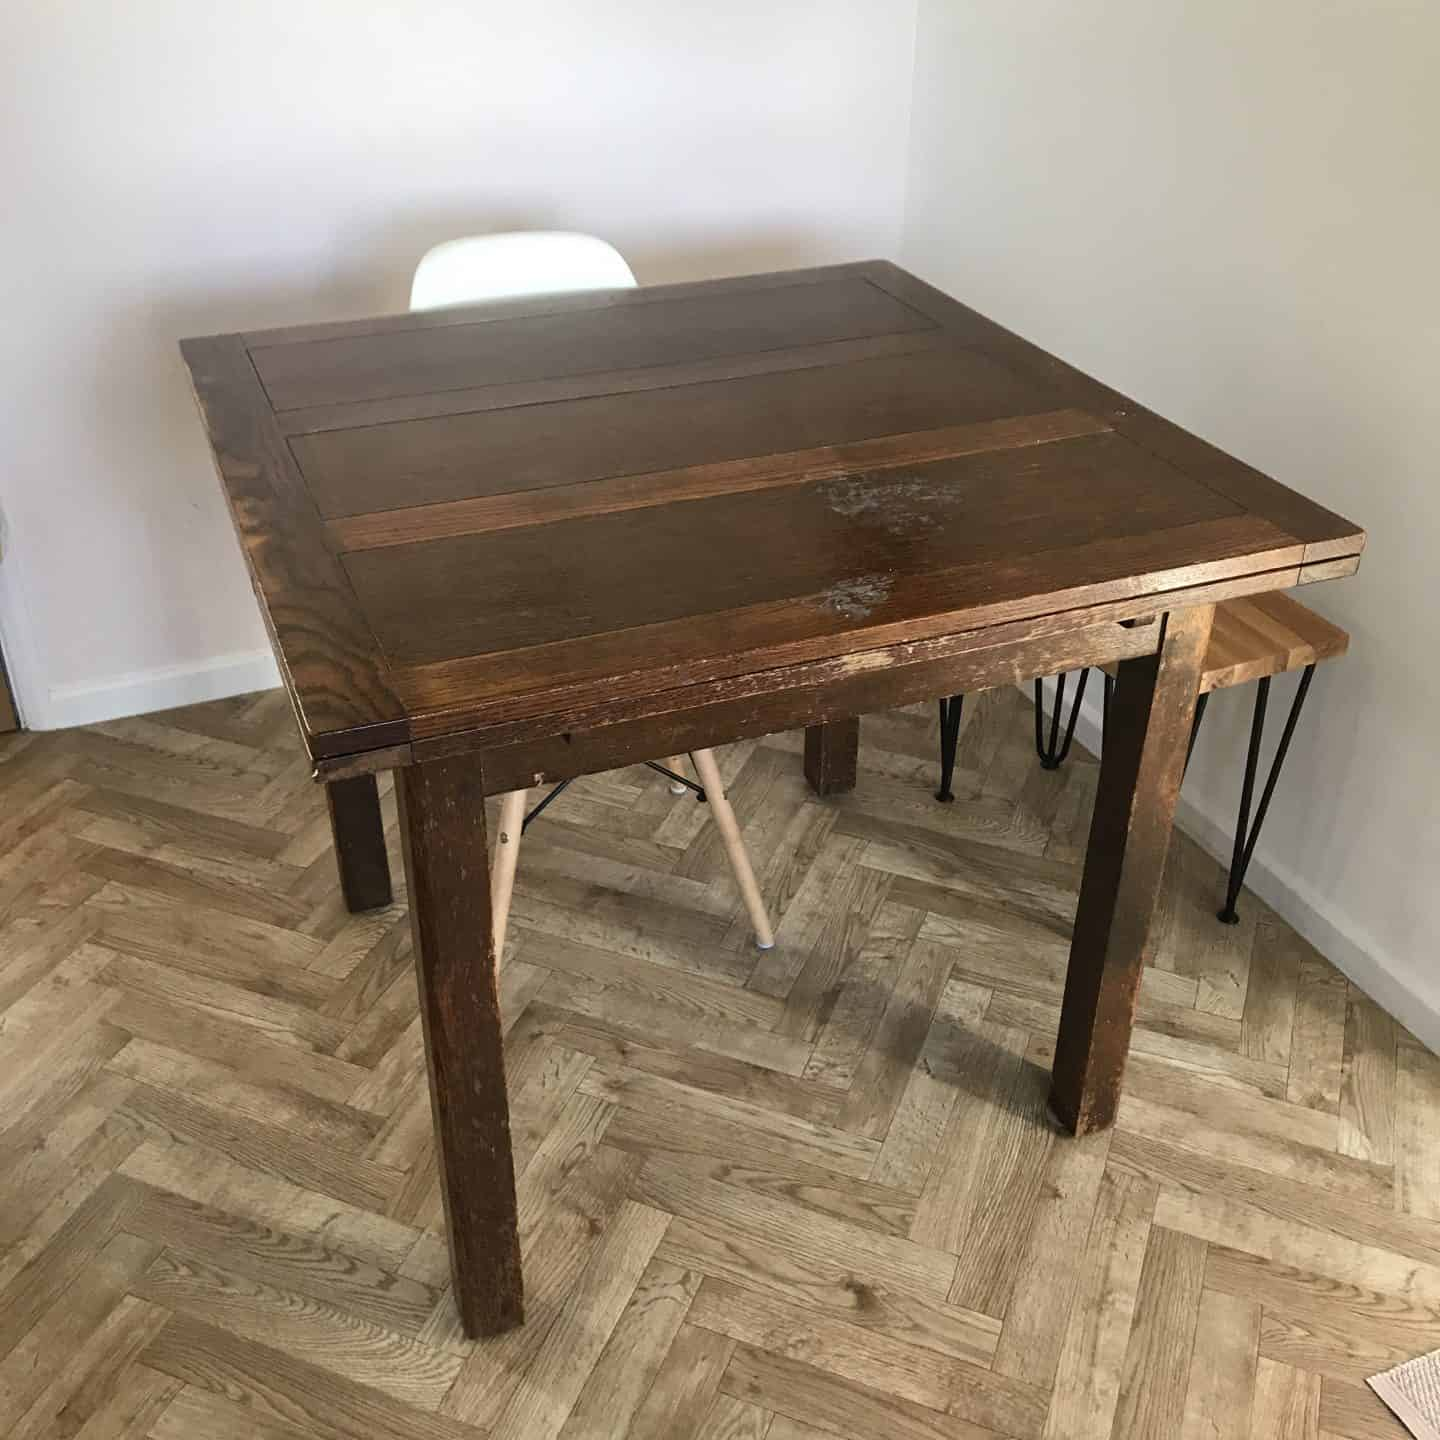 Vintage utility table before it was restored